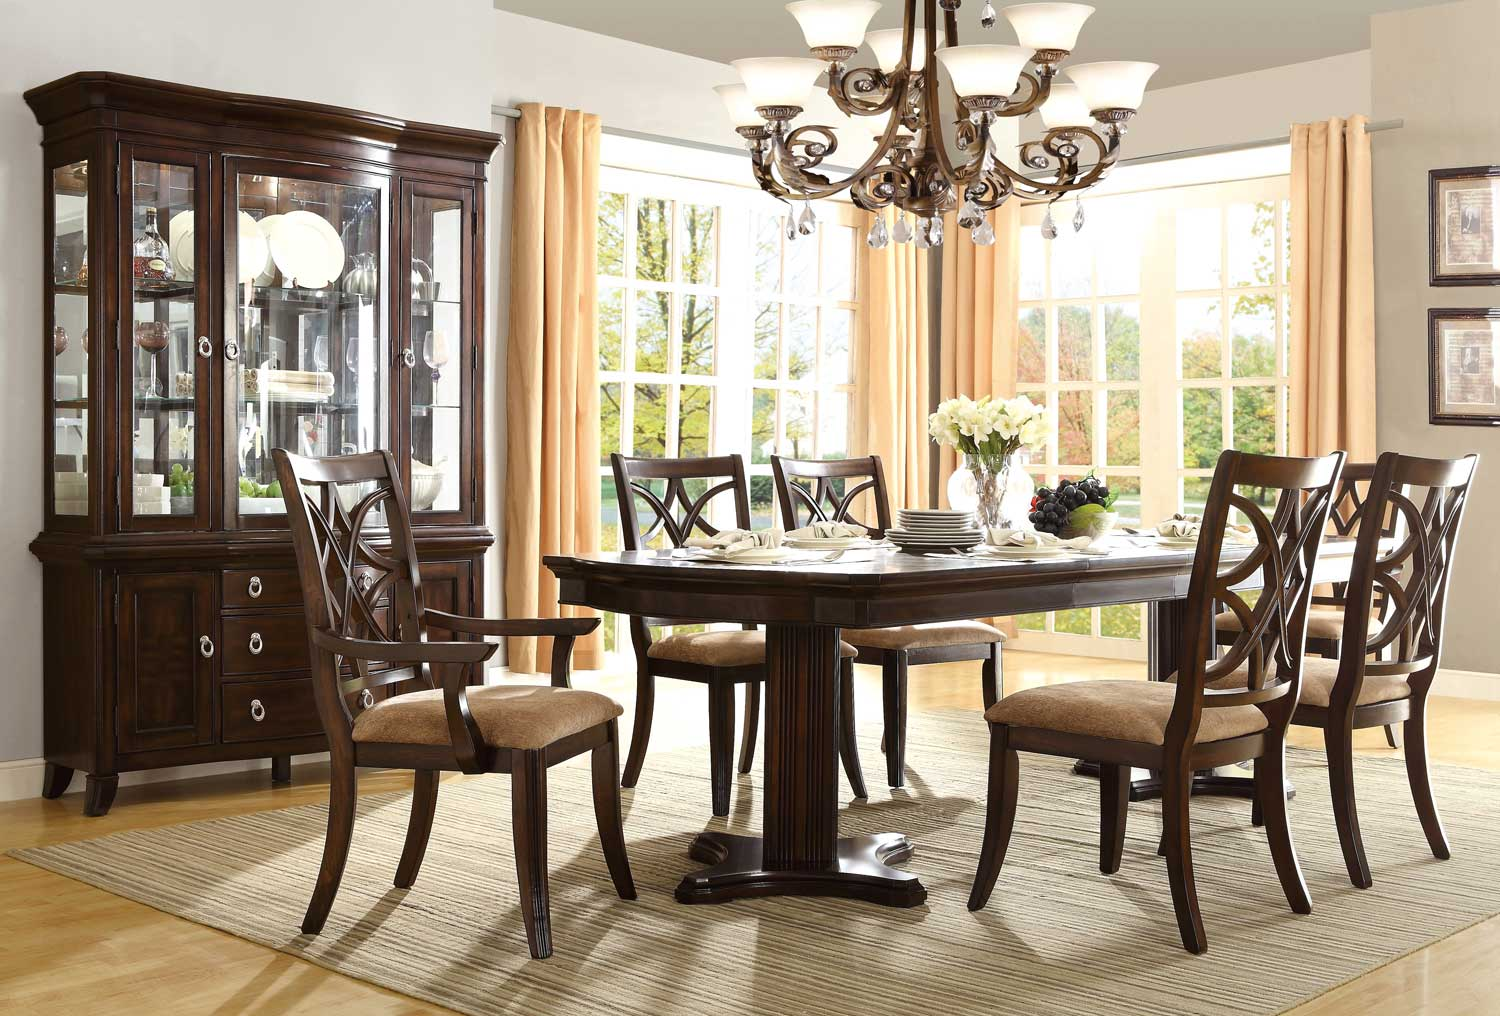 Homelegance Keegan Double Pedestal Dining Set   Neutral Tone Fabric   Cherry